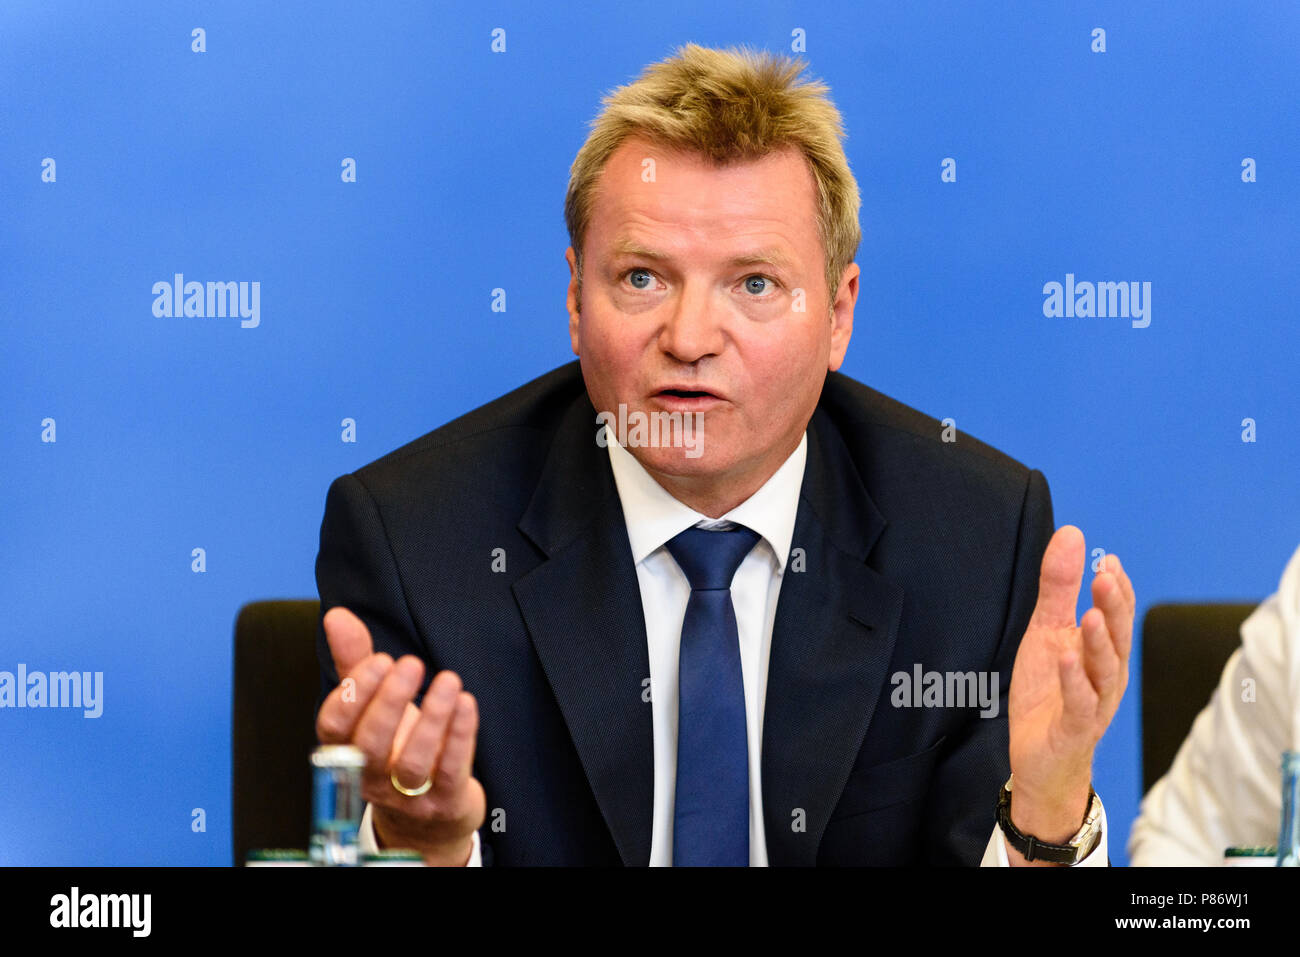 Minister of state at the ministry of Interior, Construction and Homeland Dr. Helmut Teichmann during the presentation of the 'Masterplan Migration - Measures to Organize, Control and Limit Immigration.' The plan includes stopping and rejecting migrants who are already registered in other EU countries at the German border. - Stock Image